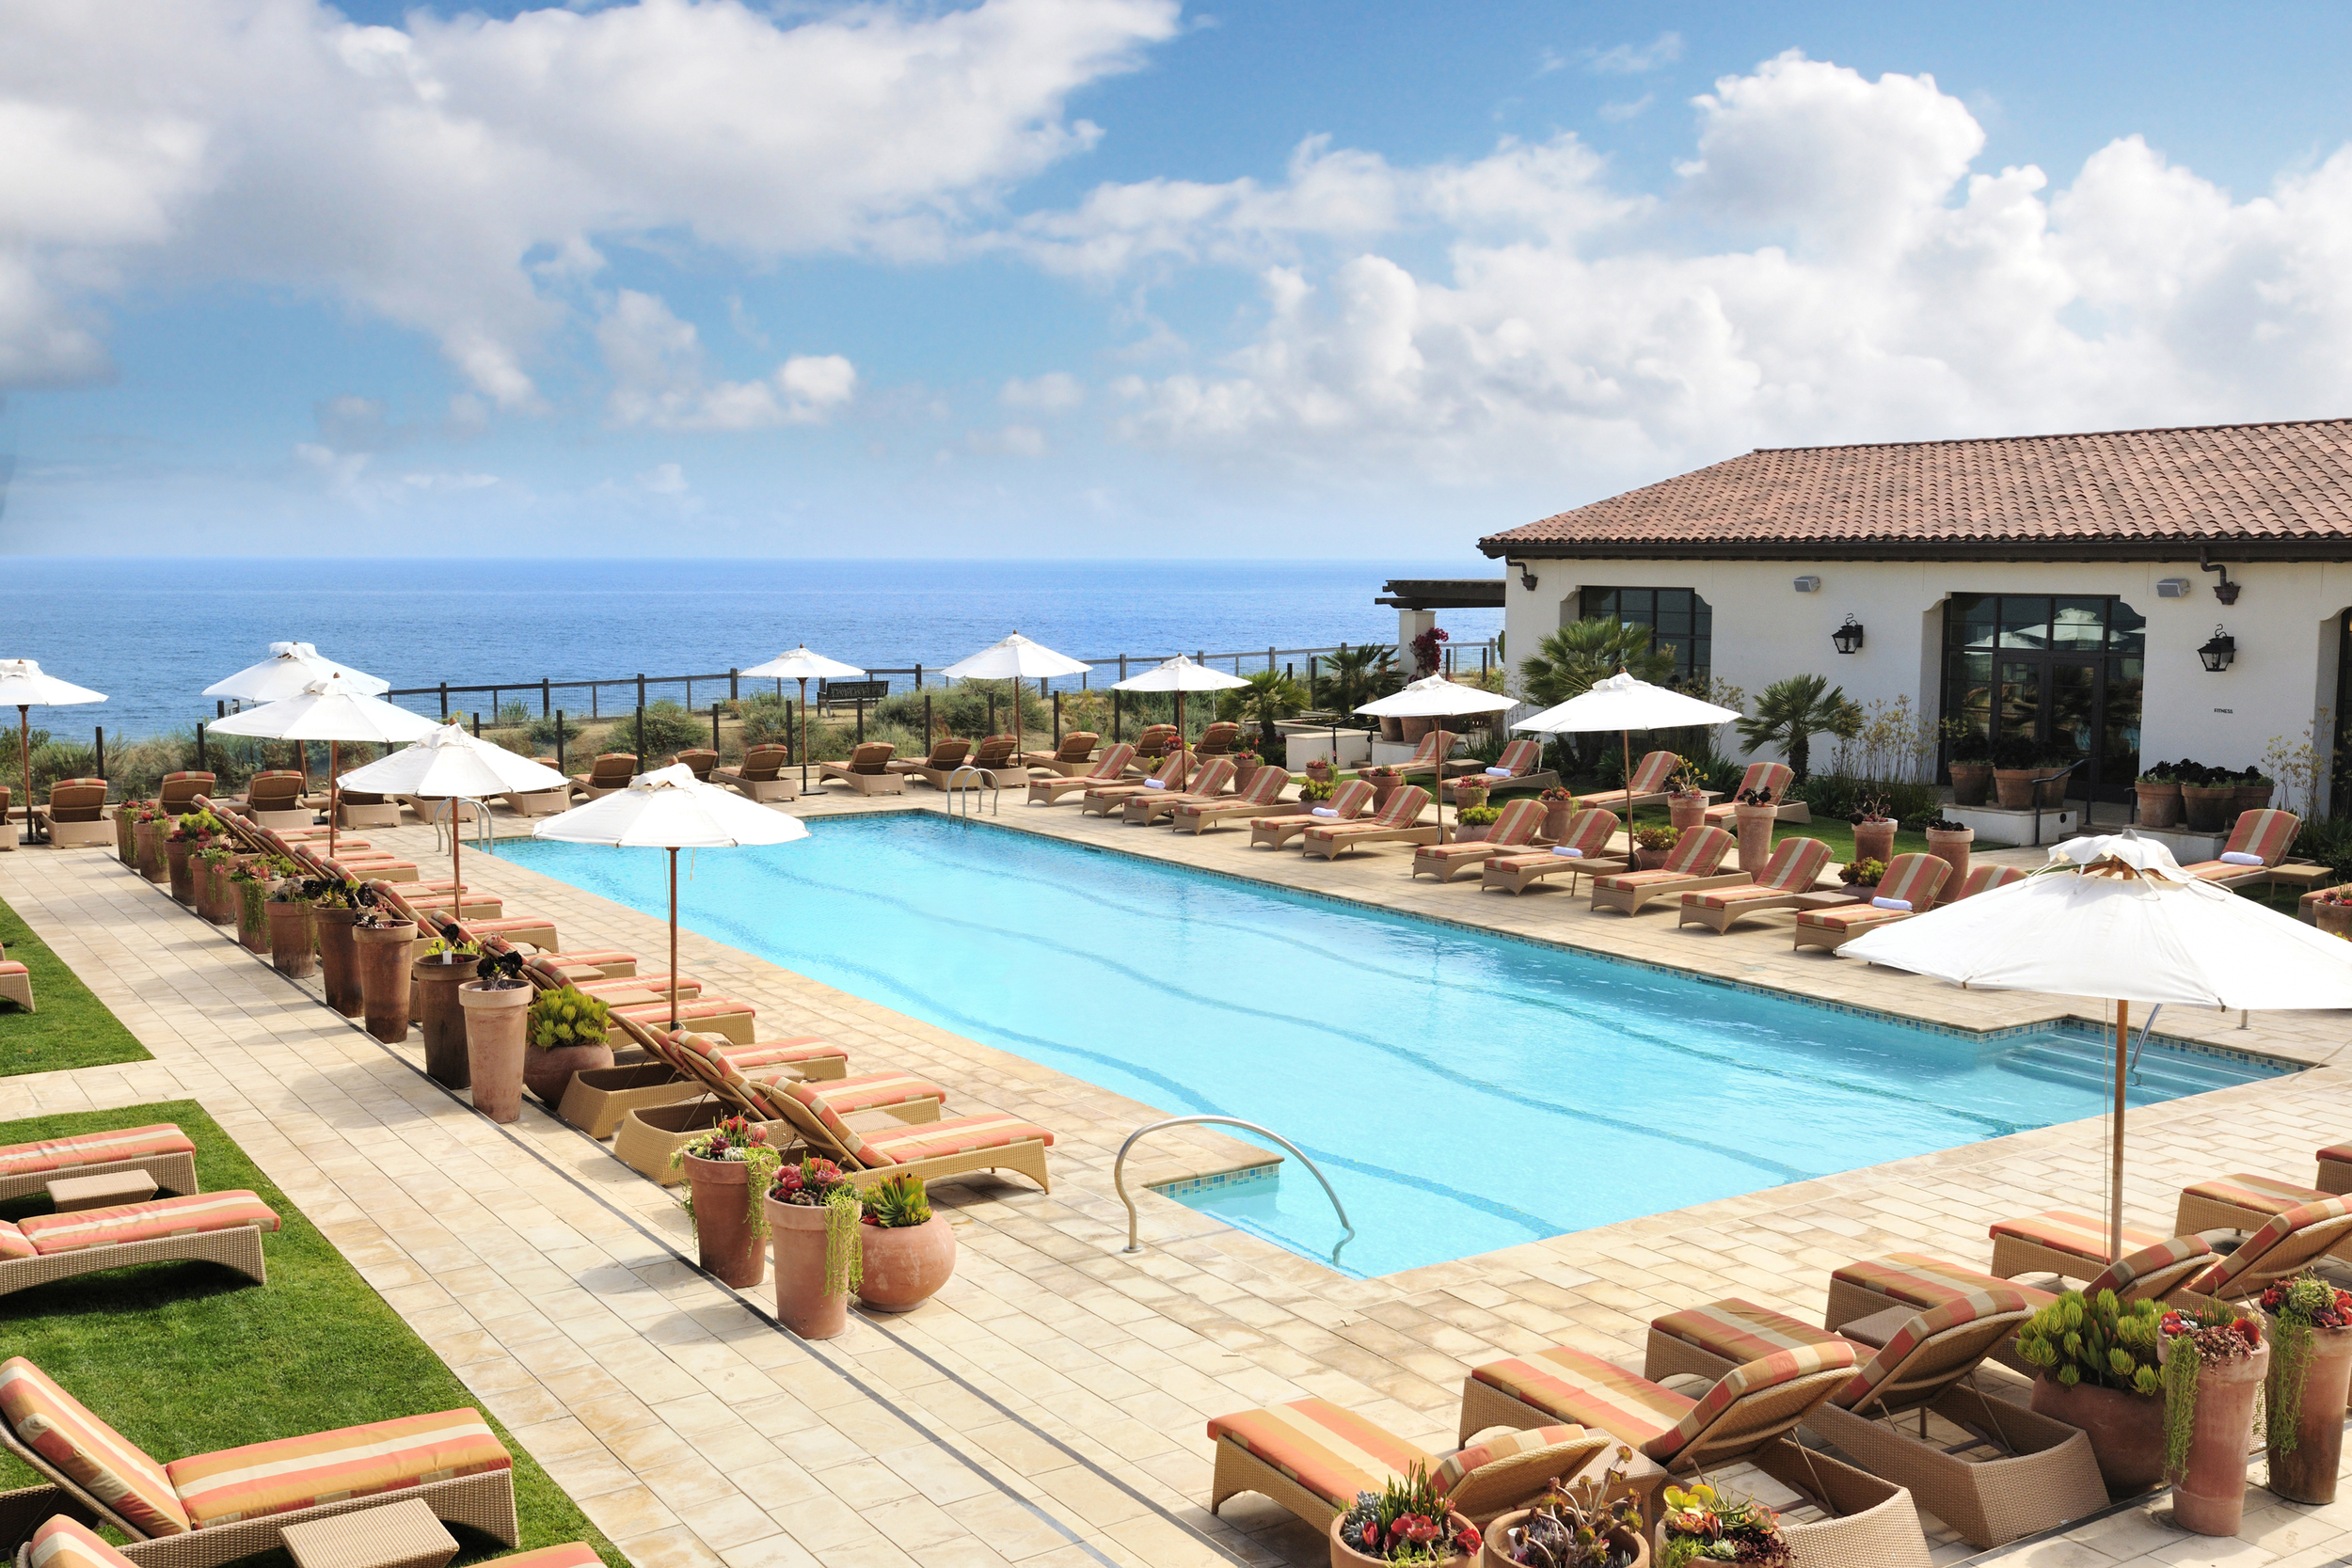 10/Terranea Resort